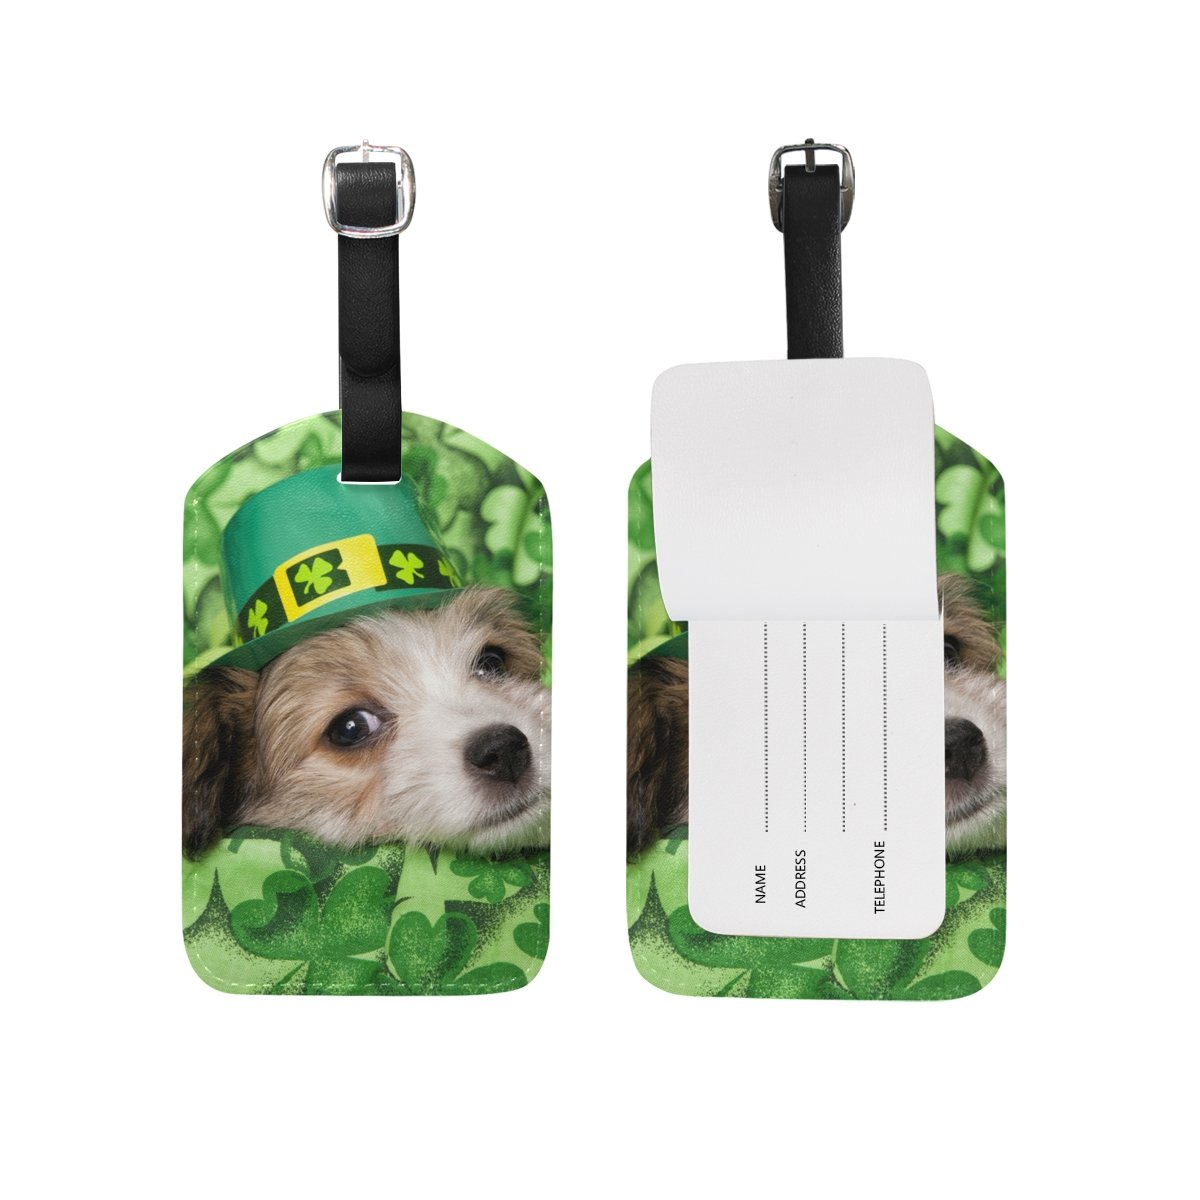 Cute Dog Clover St Patricks Day Leather Luggage Tags Personalized Flexible Custom Travel Tags With Adjustable Strap